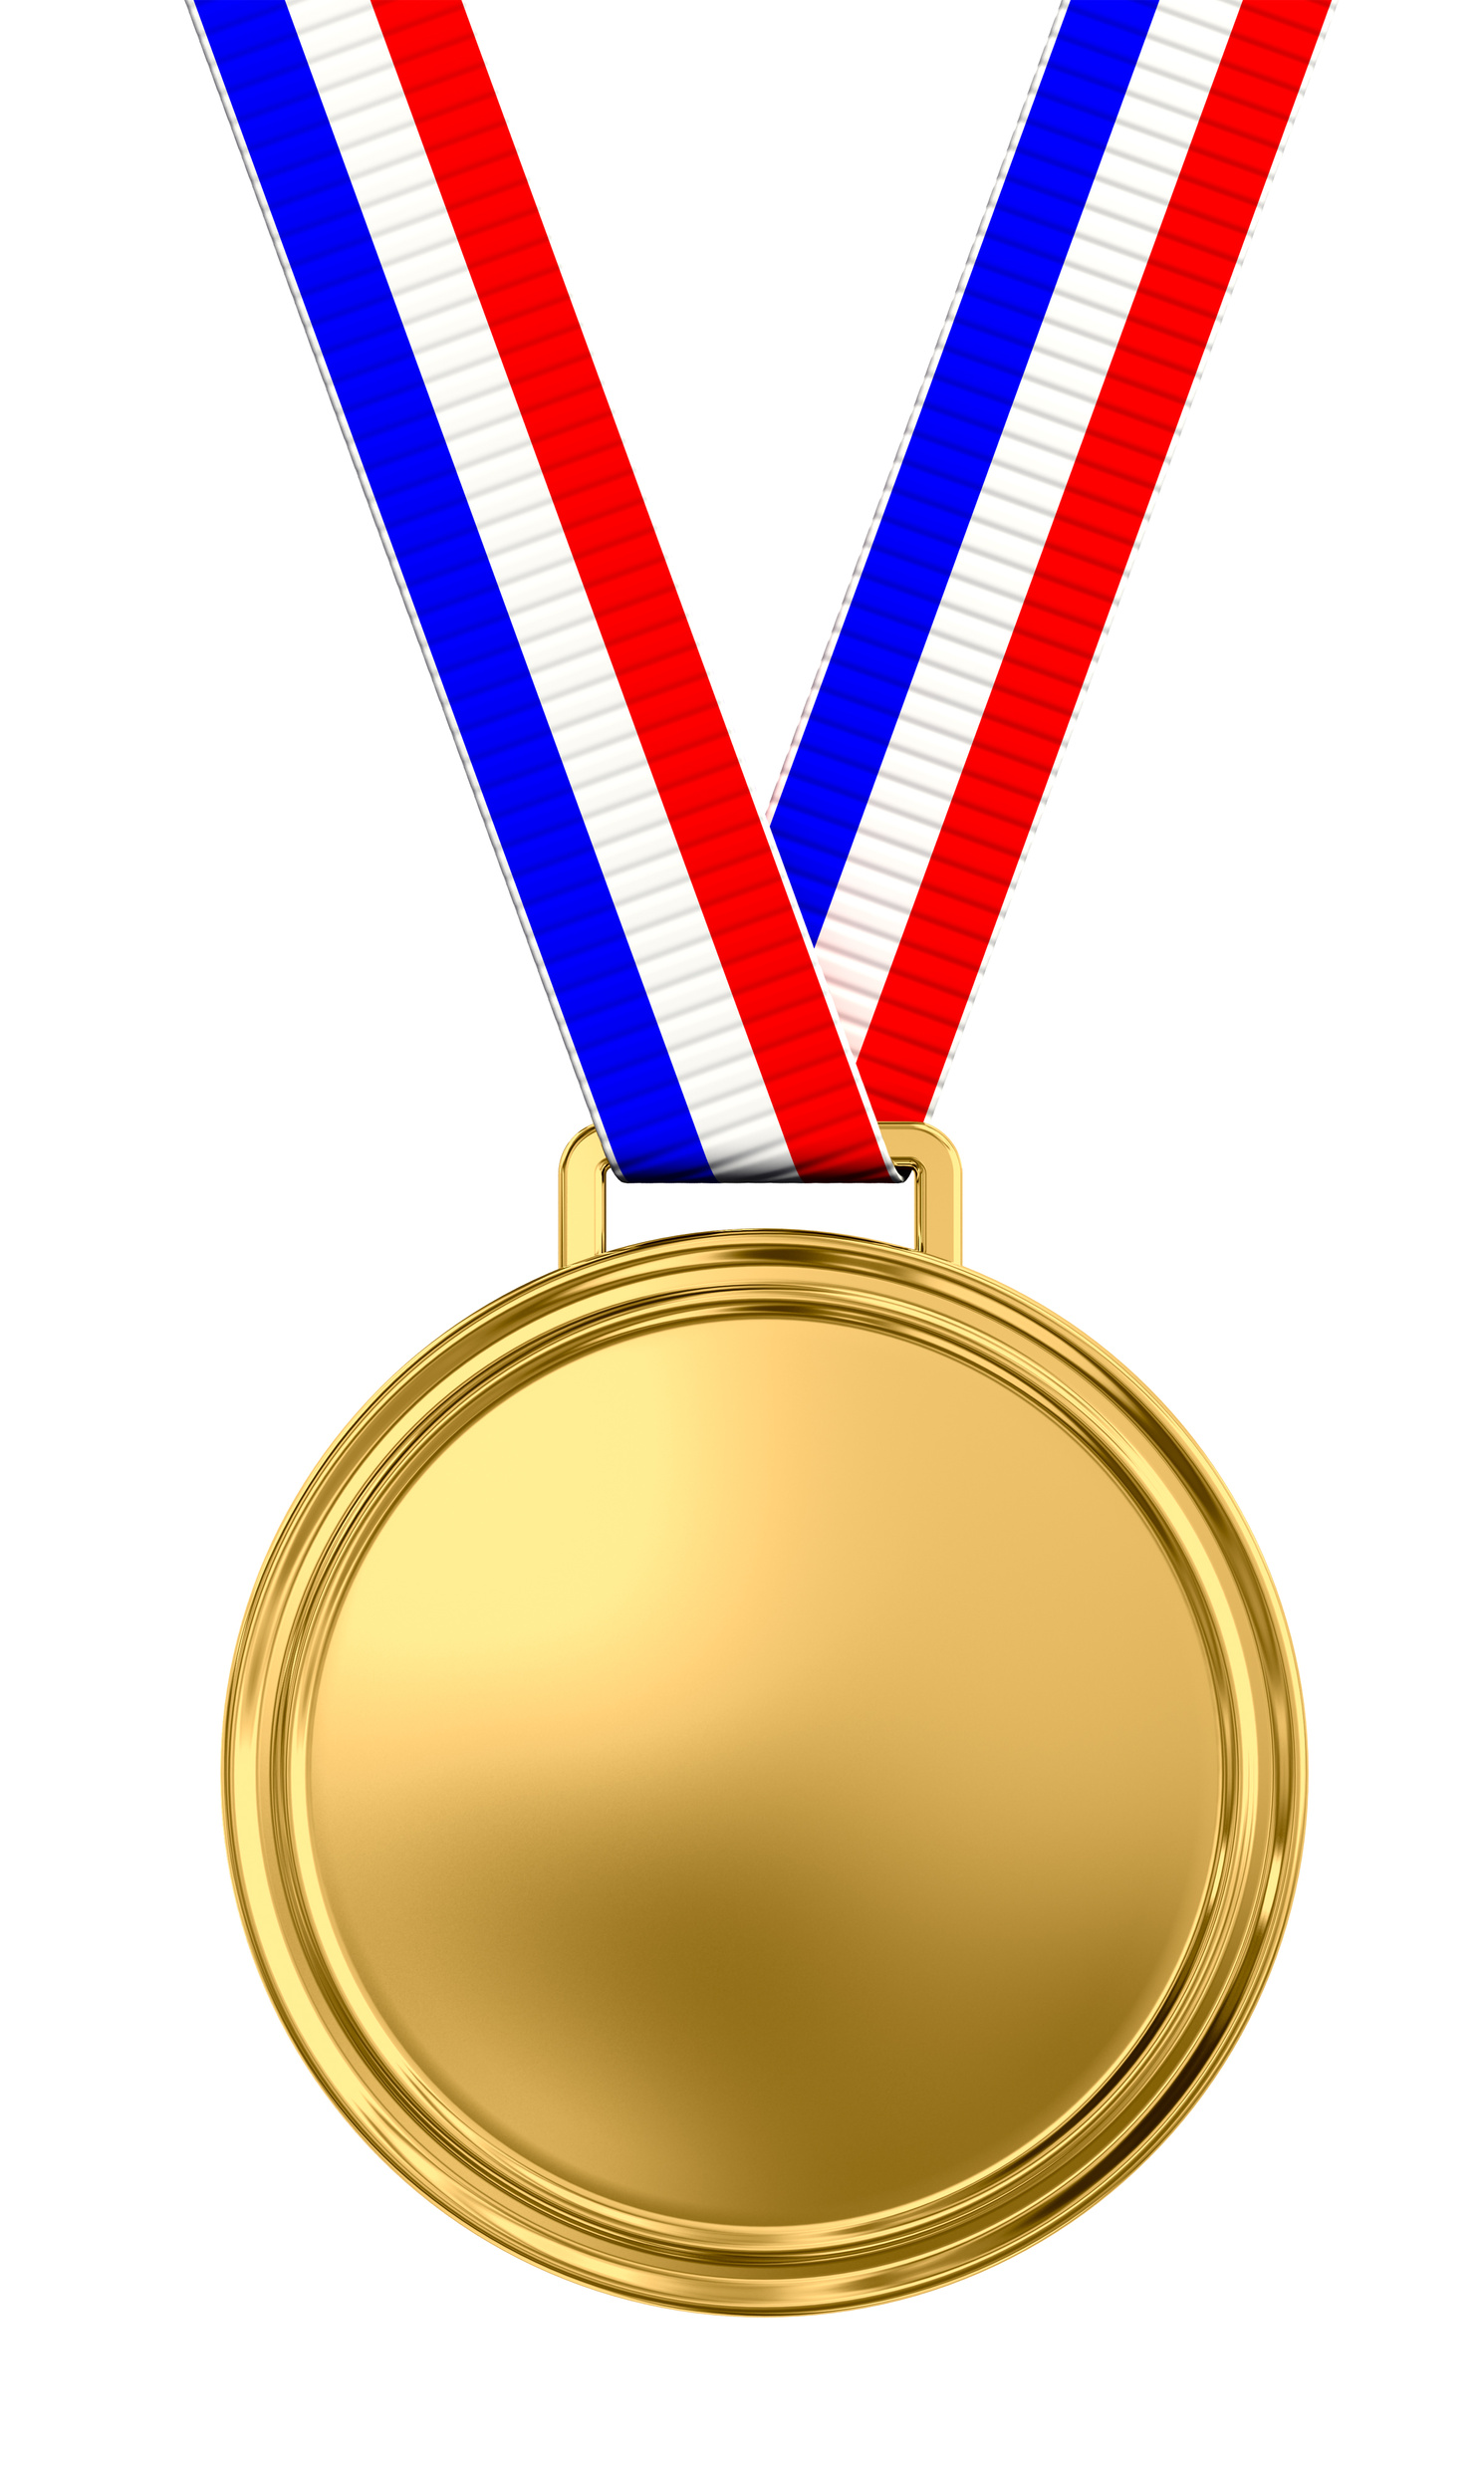 clip art medals free - photo #1